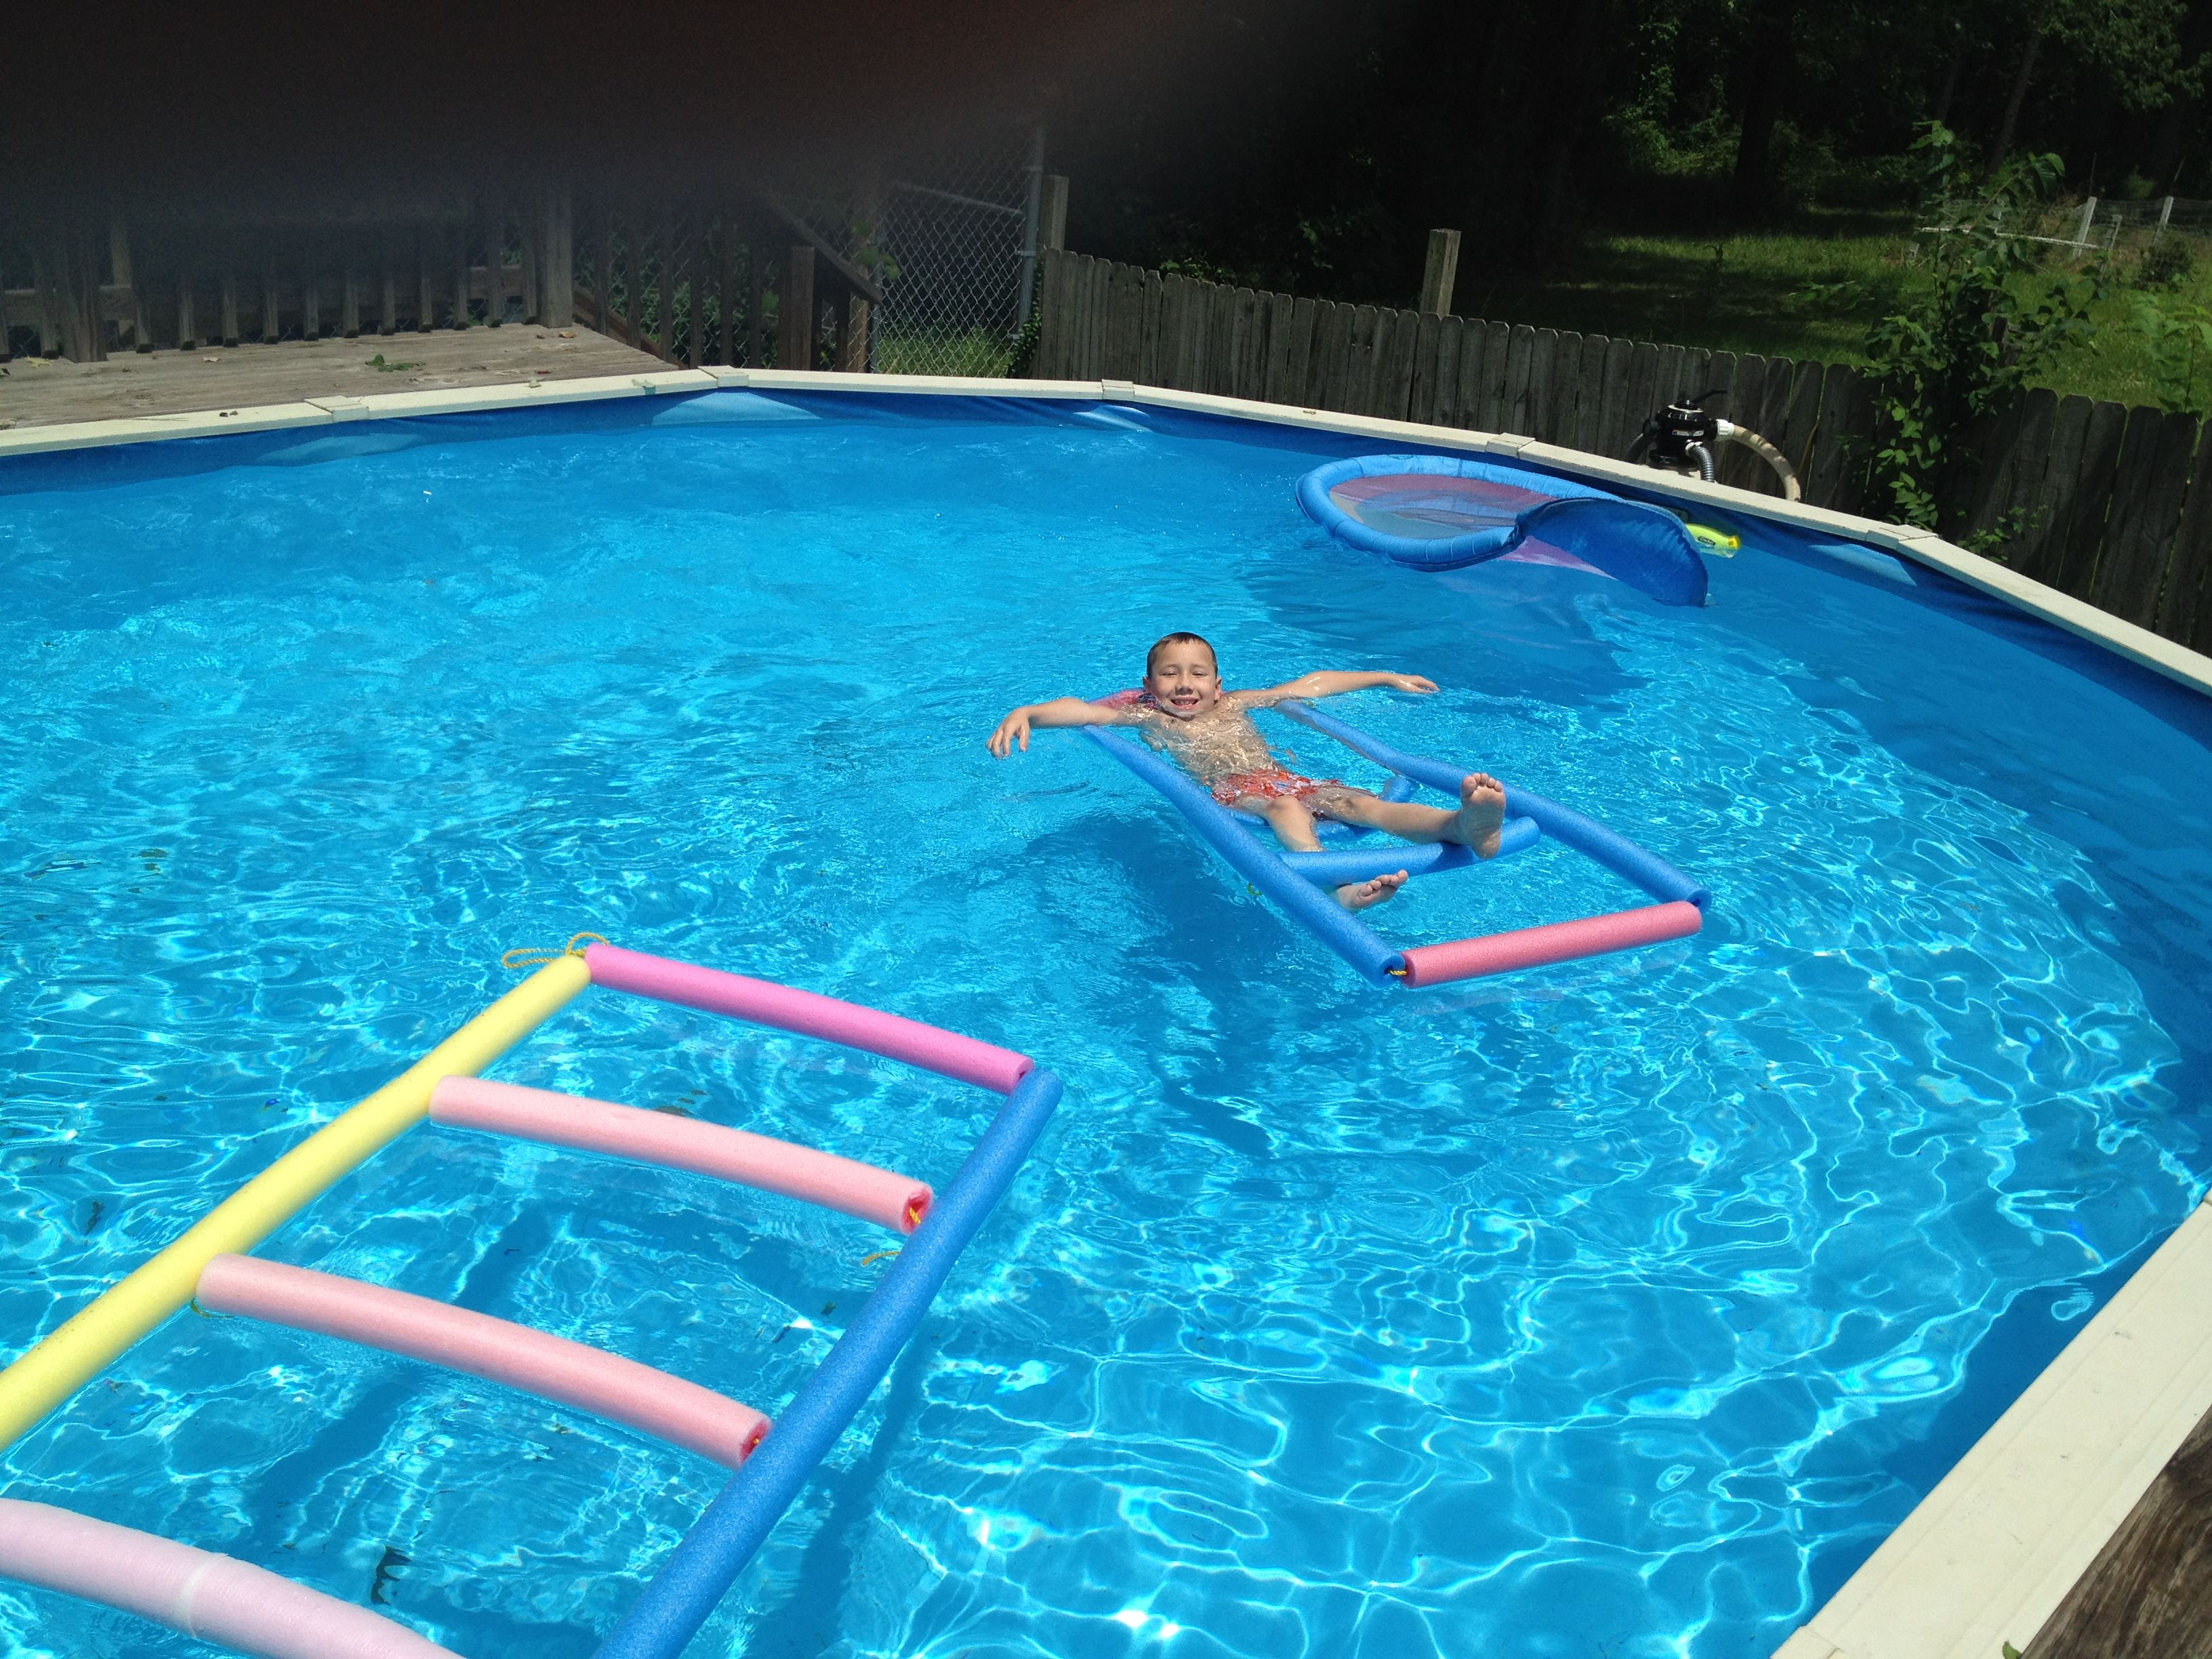 Diy Pool Float Made From Noodles And Rope Use A Dowel Rod And Some Duct Tape To Thread The Rope Through The Noodles Cool Pools Pool Images Diy Pool